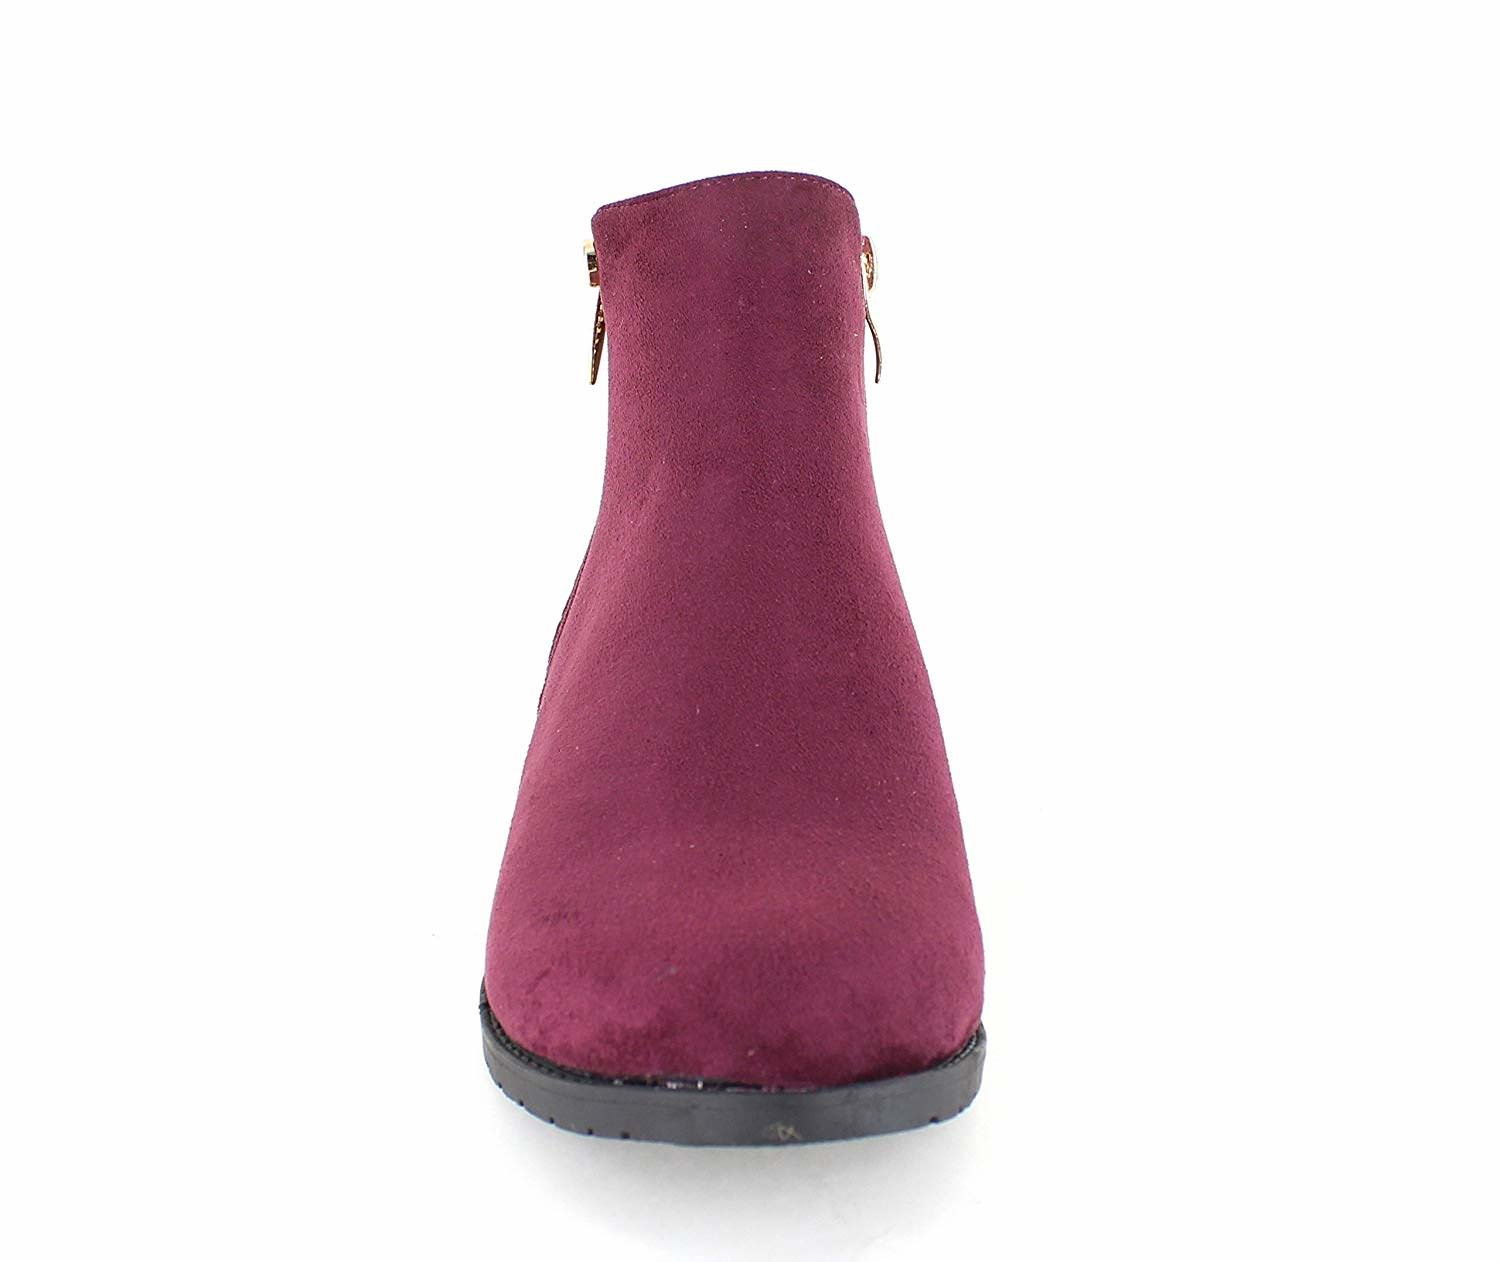 only Gold U Casual Faux Suede Gold only Trim Ankle Boots B07F9HFVHK 7.5 B(M) US|Wine 7ae979